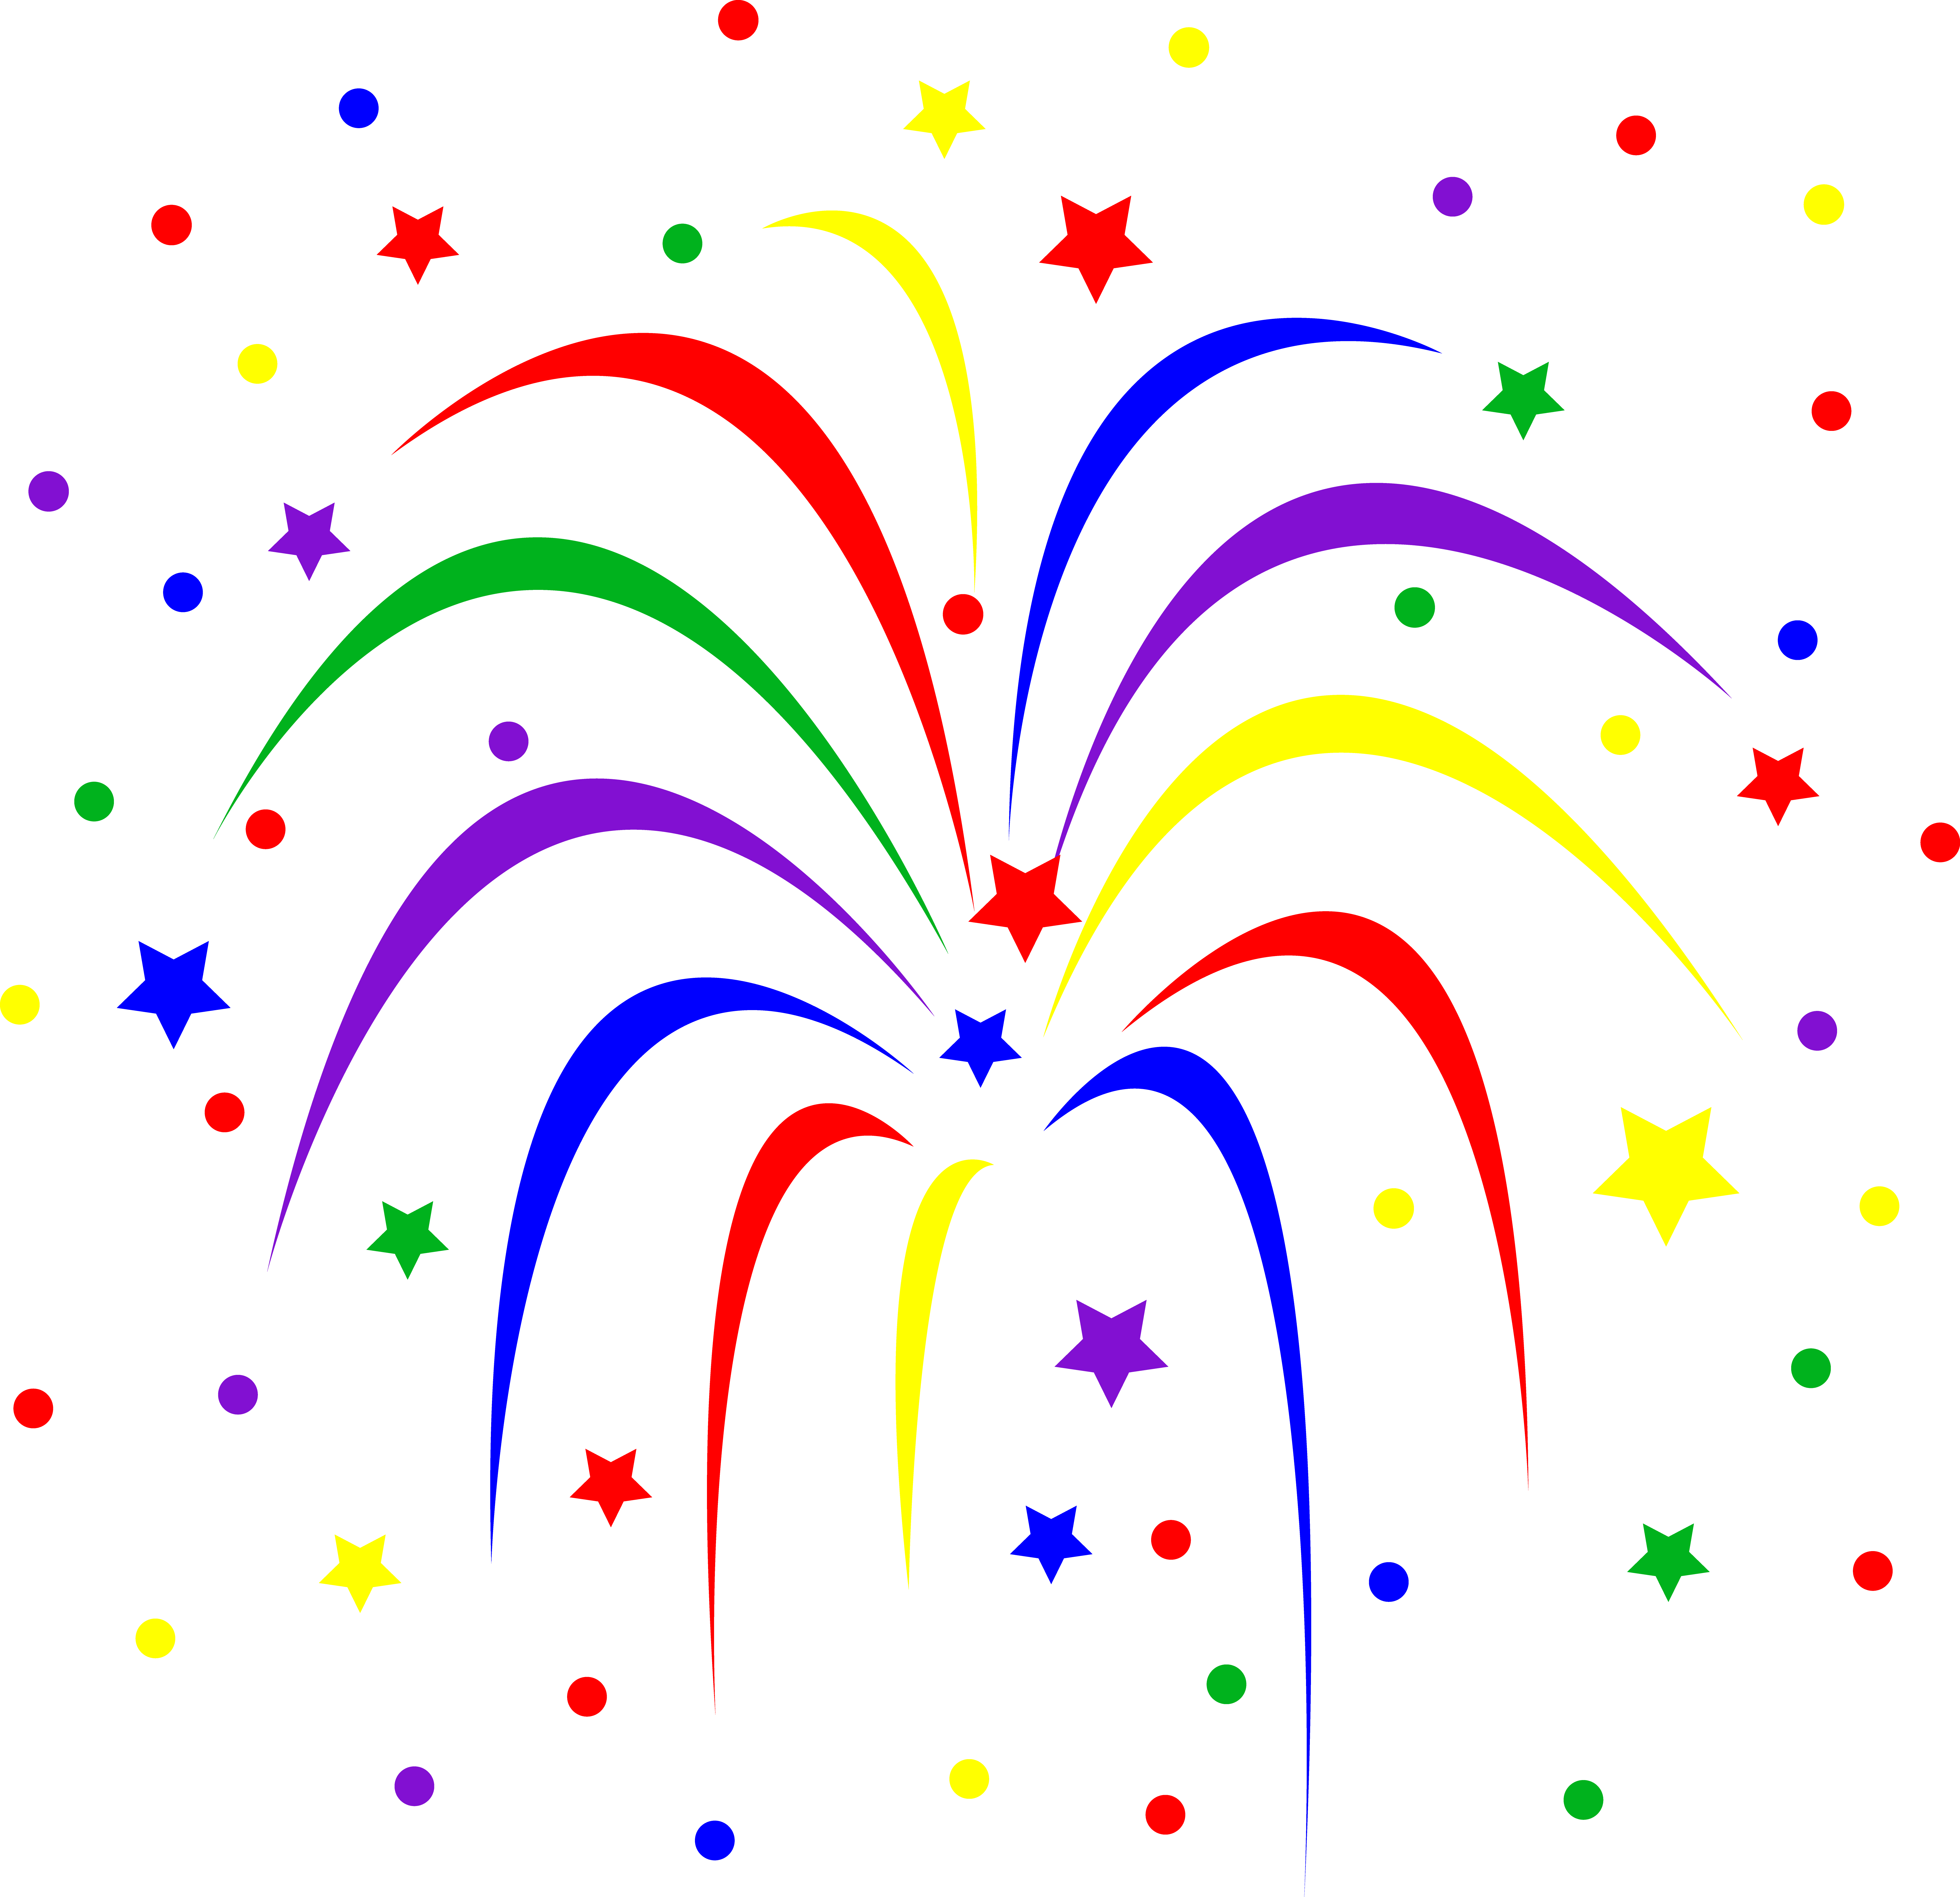 fireworks clipart no background clipart panda free clipart images rh clipartpanda com free background clipart images background clipart free download